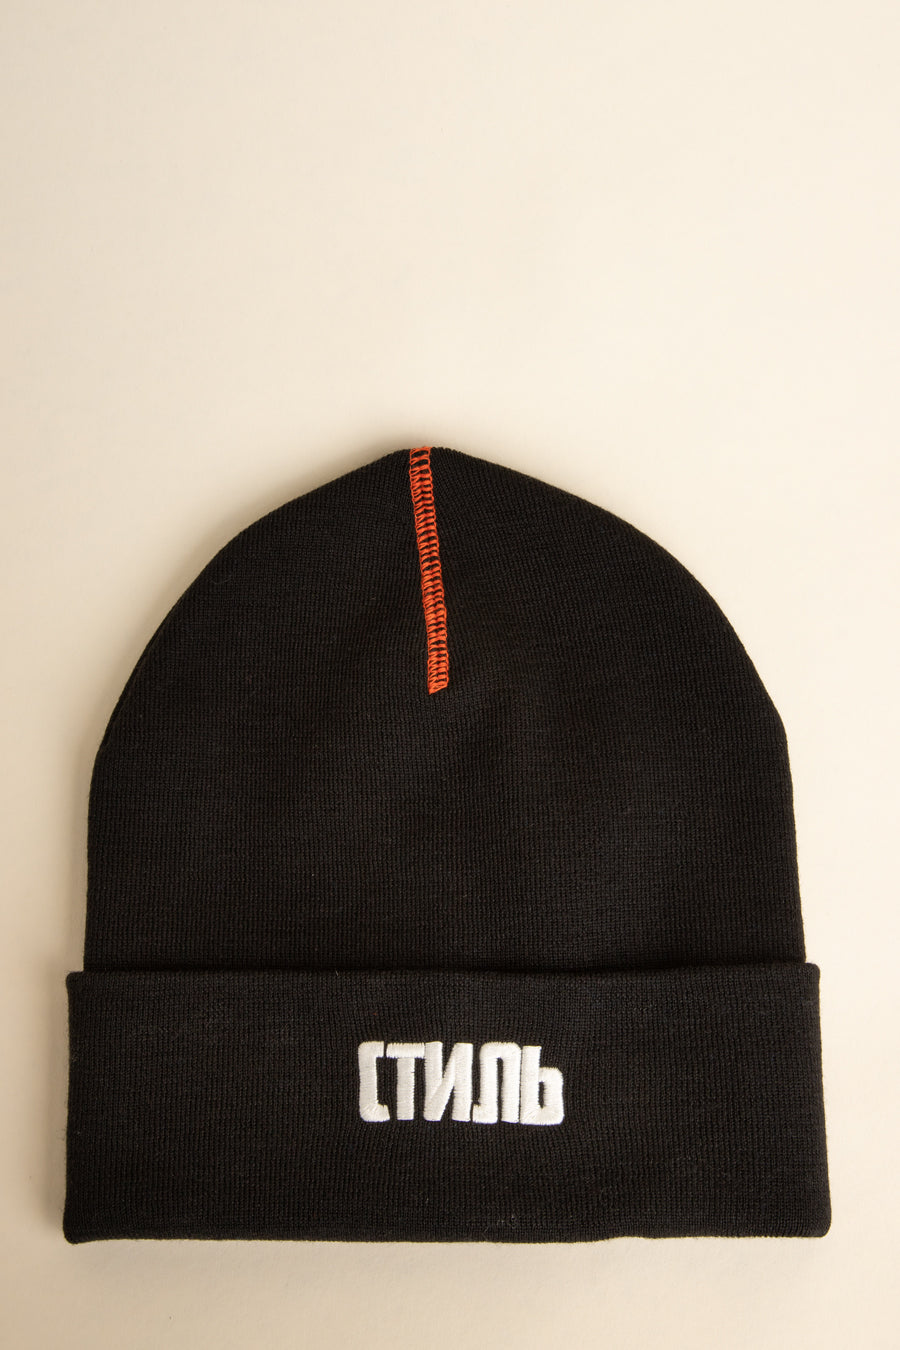 Heron Preston - Black CTNMb Beanie